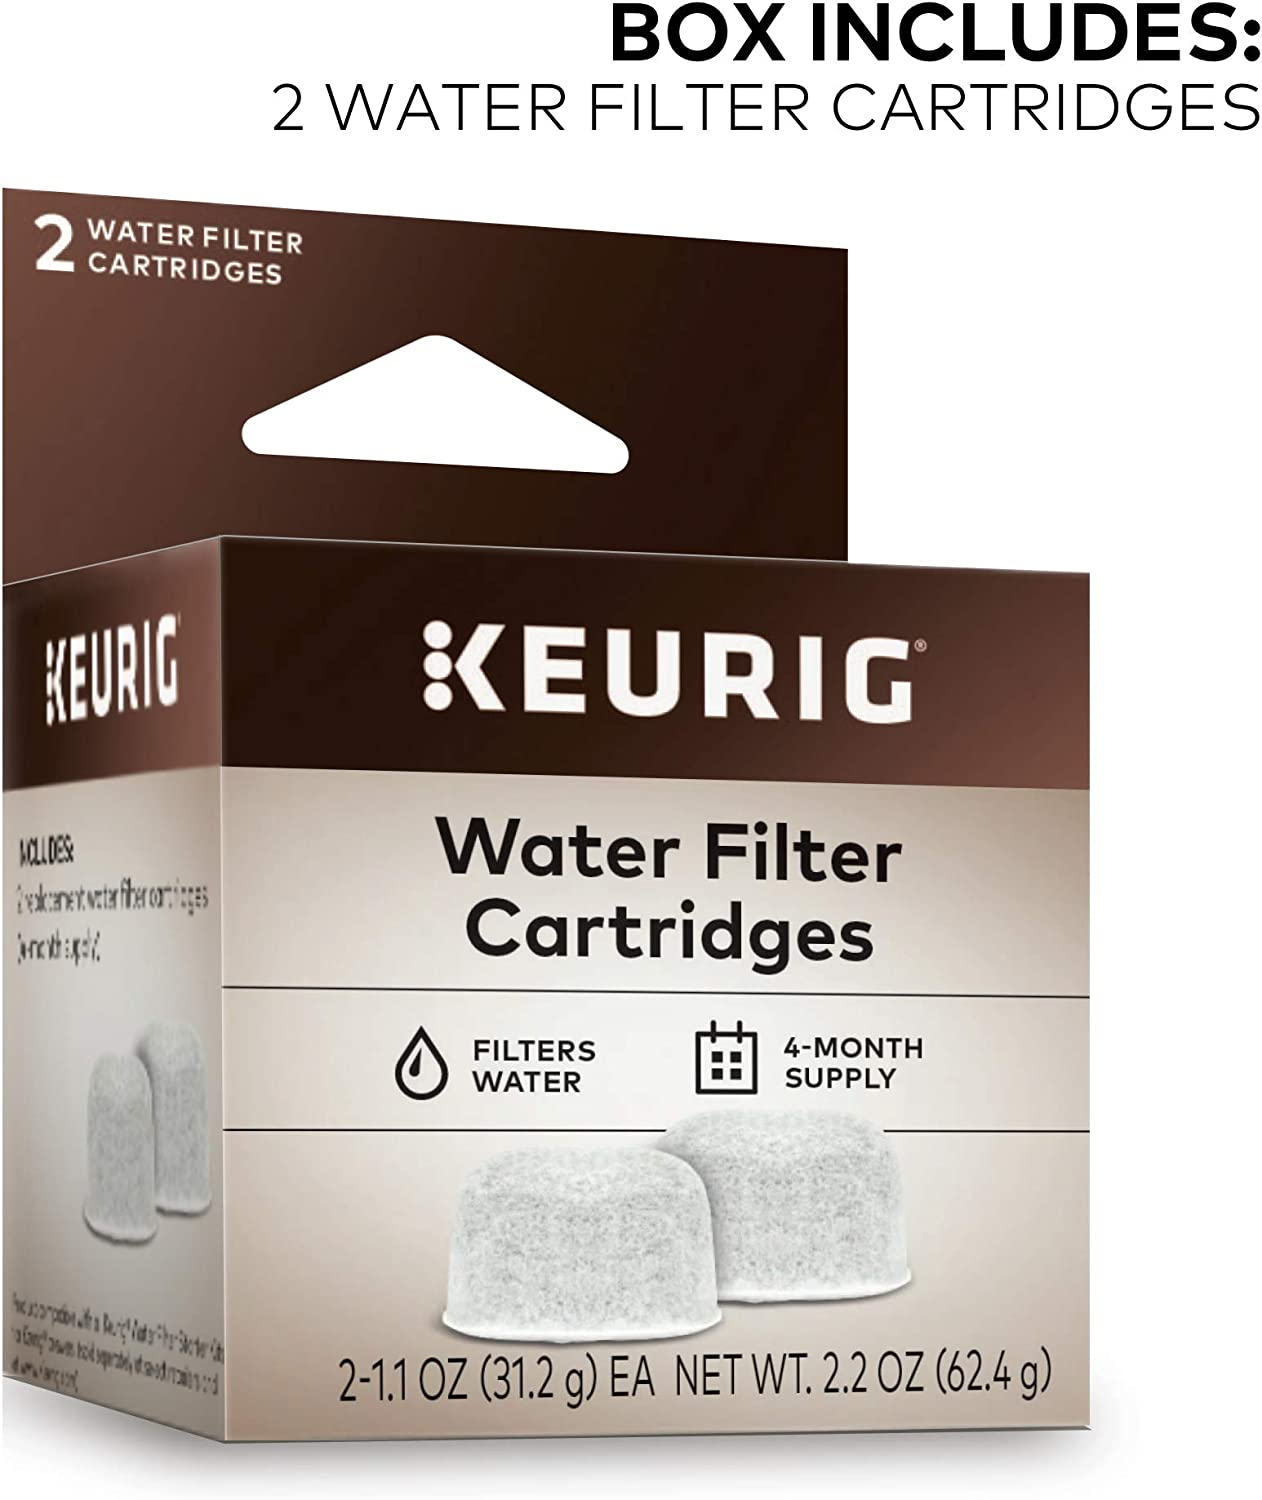 Keurig Brewer Care Kit, Includes Descaling Solution & Water Filter Cartridges, Compatible with Keurig Classic/1.0 & 2.0 K-Cup Pod Coffee Makers, 3 Count